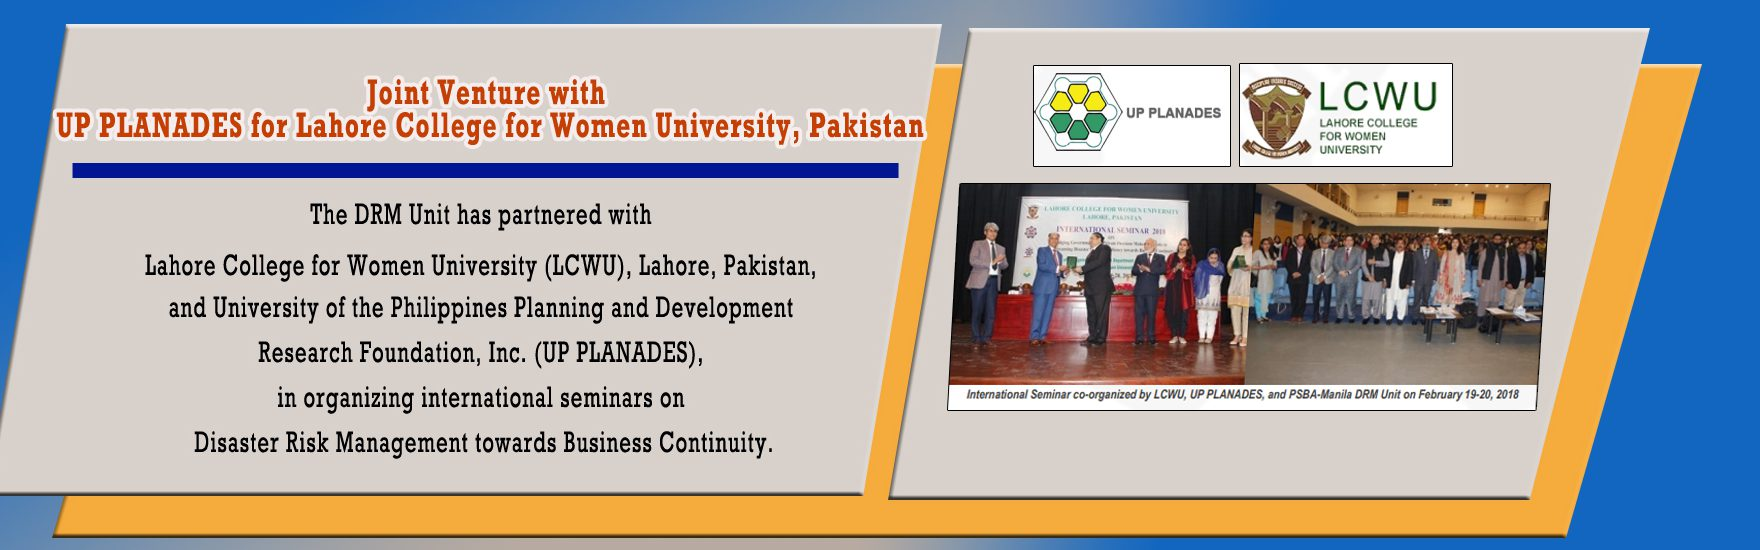 Joint Venture with UP PLANADES for Lahore College for Women University, Pakistan